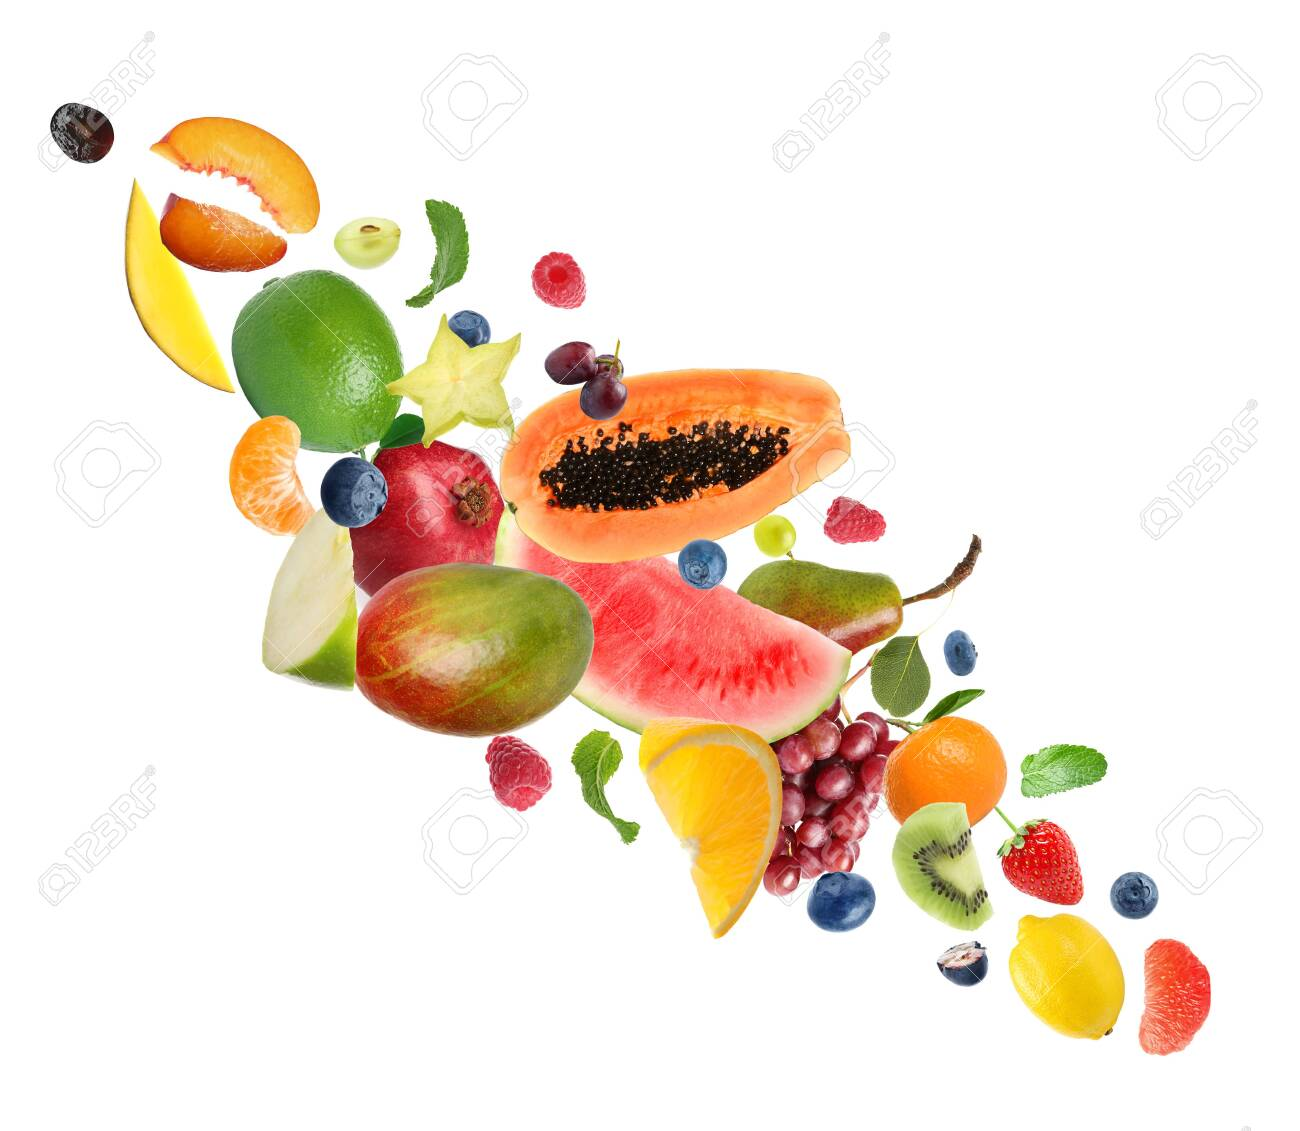 Set of different fresh fruits and berries on white background - 146823776